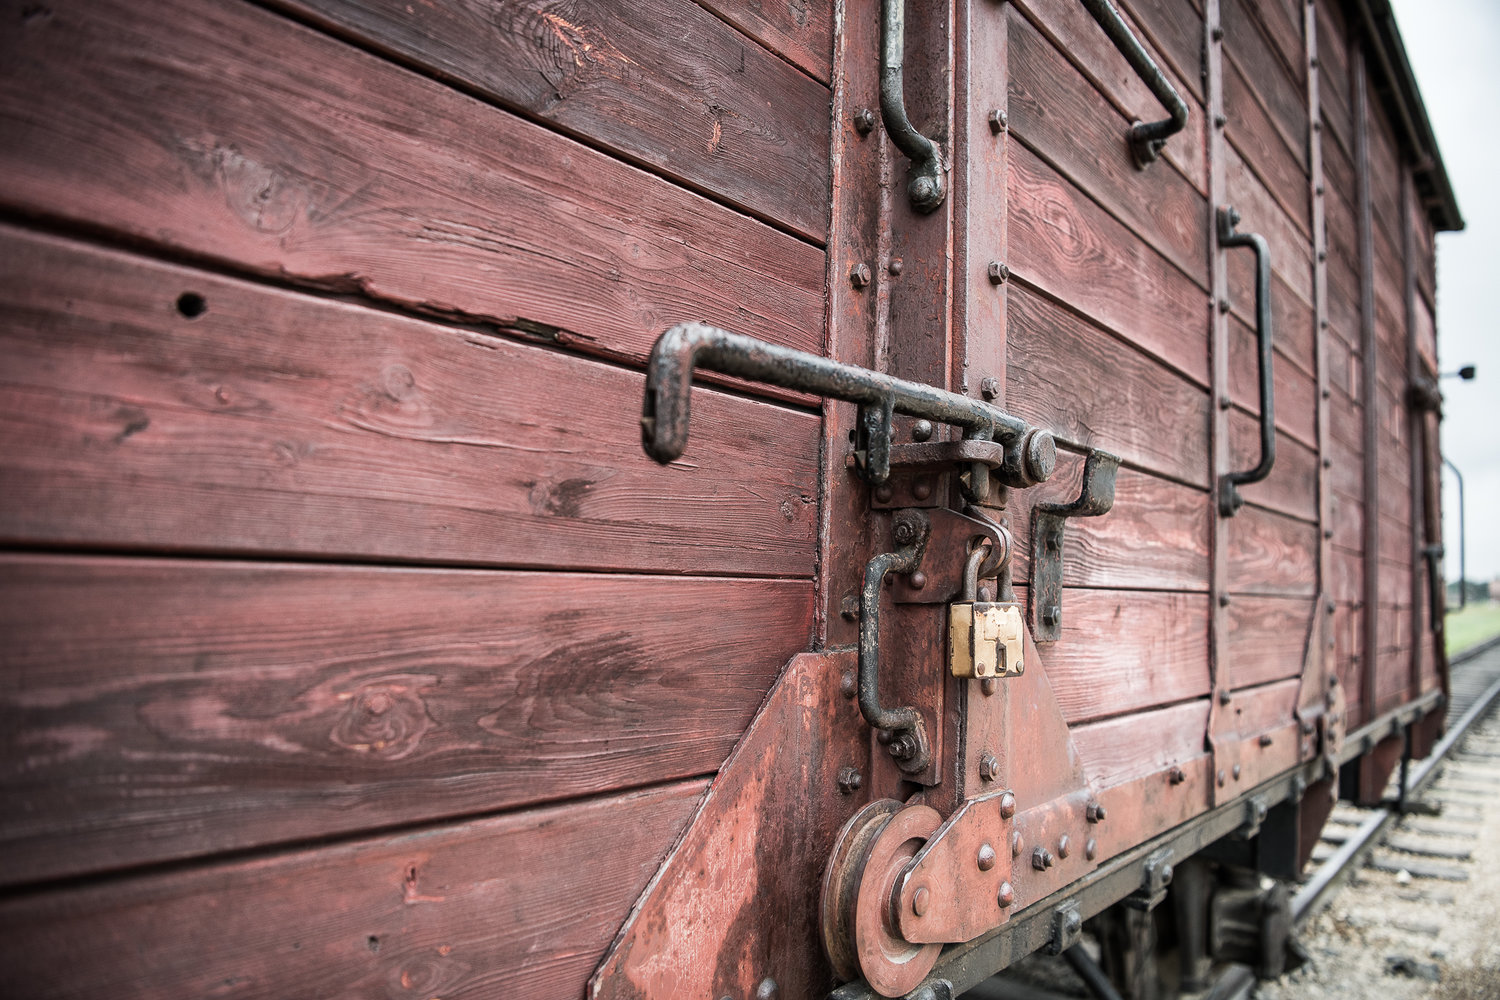 Remembering The Past - A Visit to Auschwitz, Poland